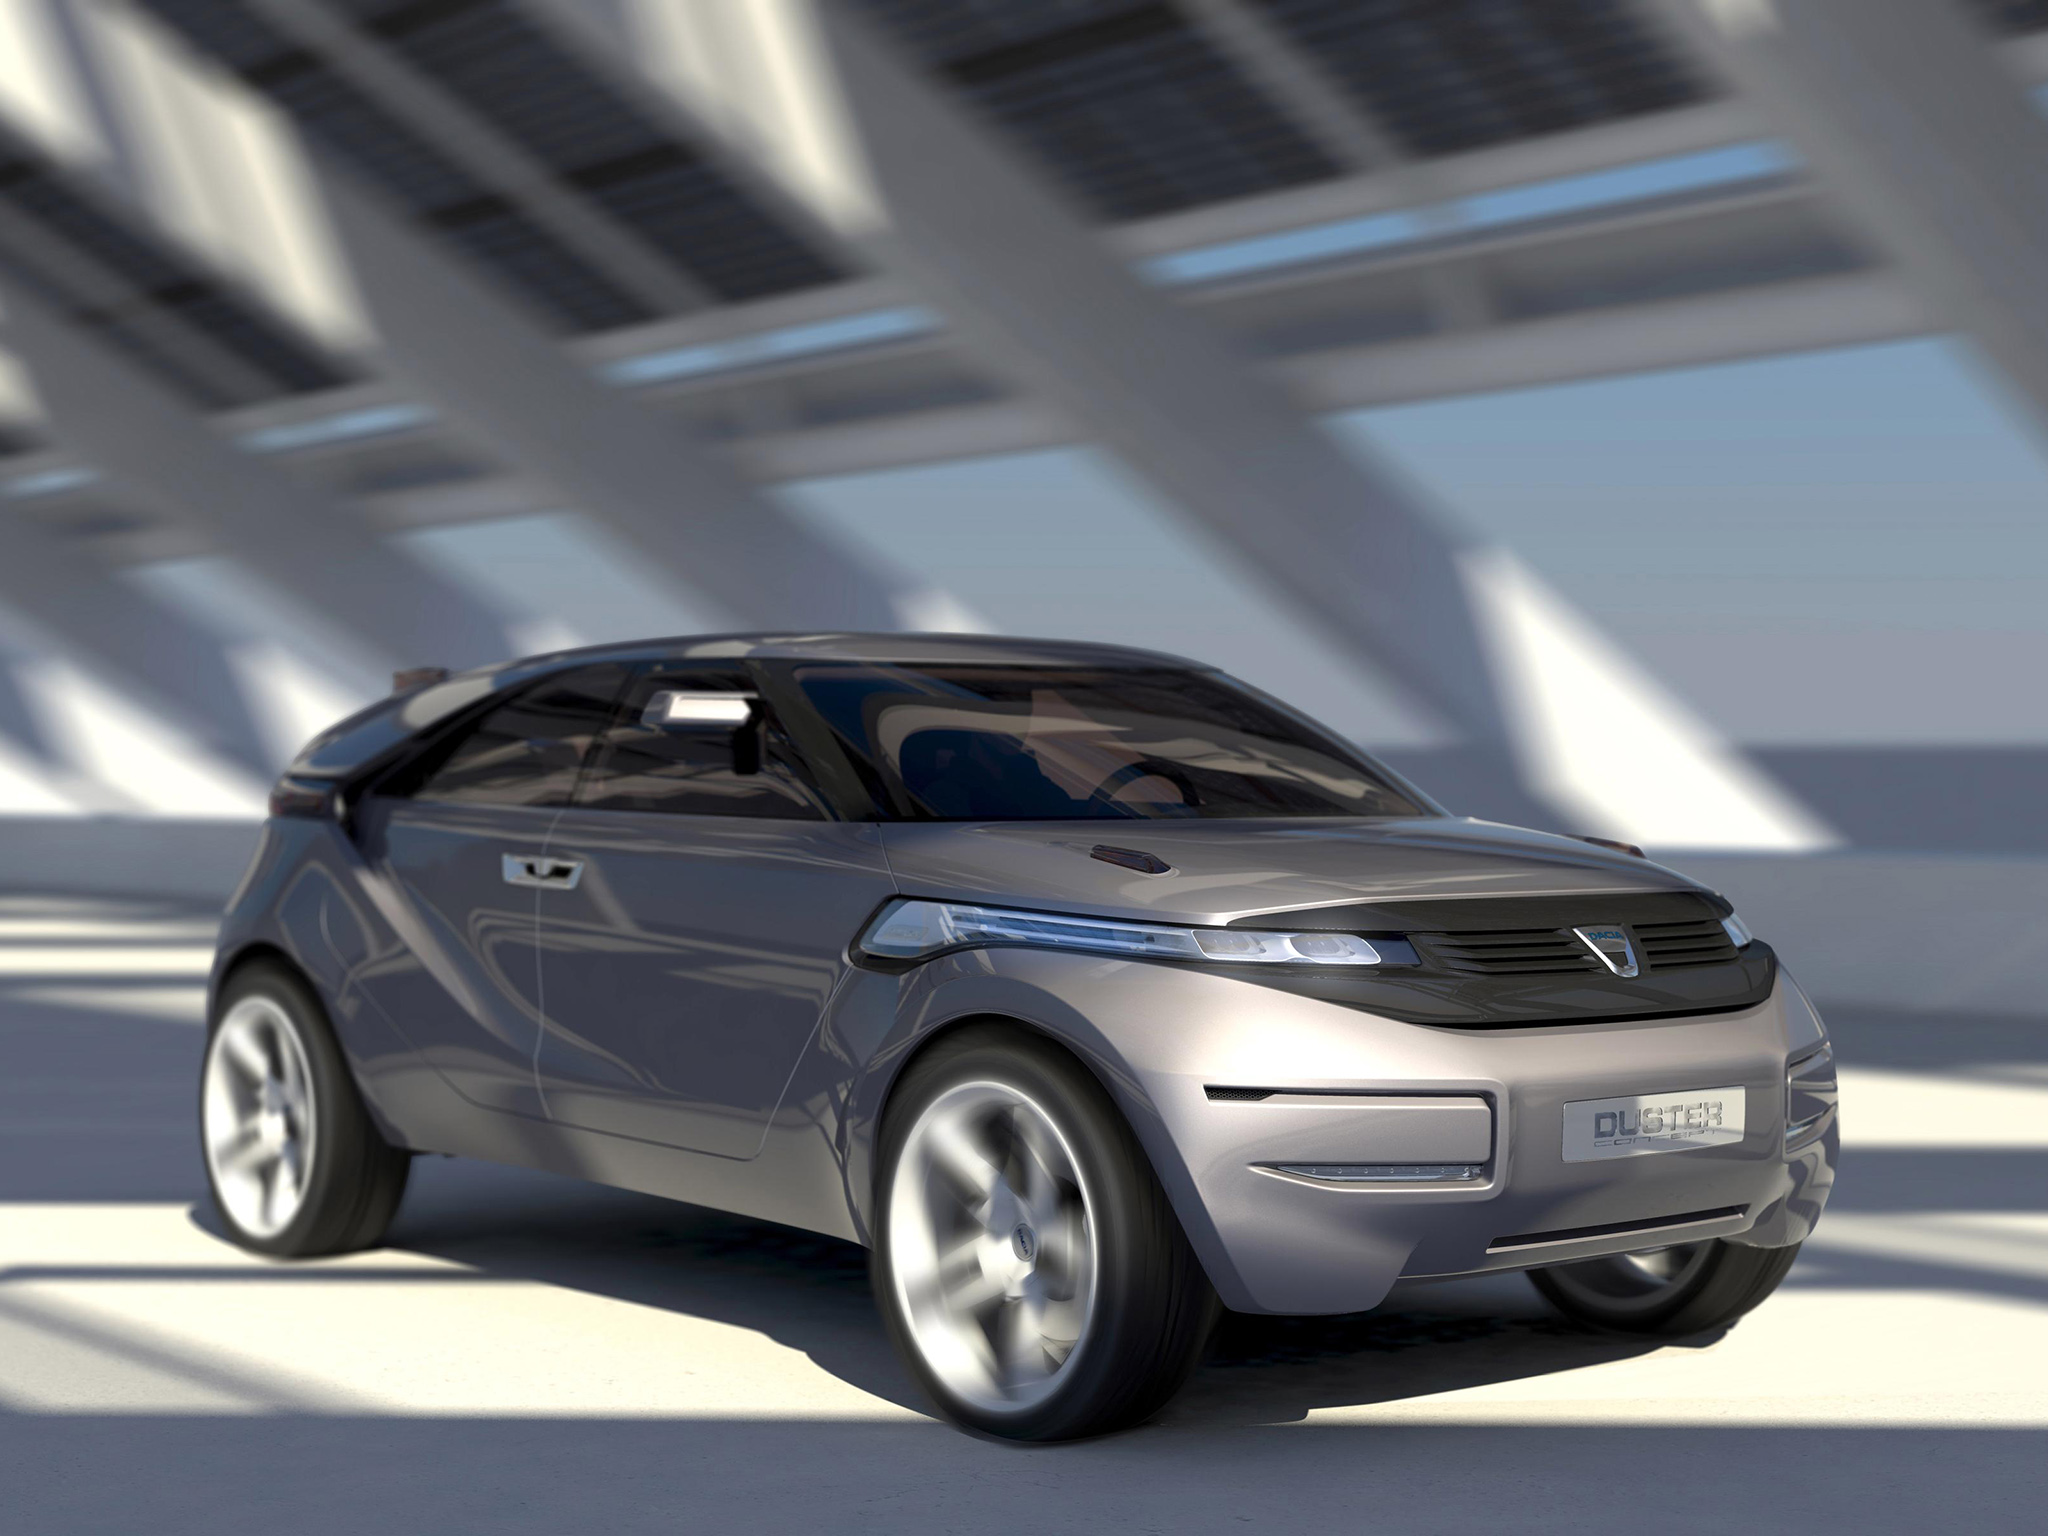 world-s-cheapest-ev-could-come-from-dacia-119169_1